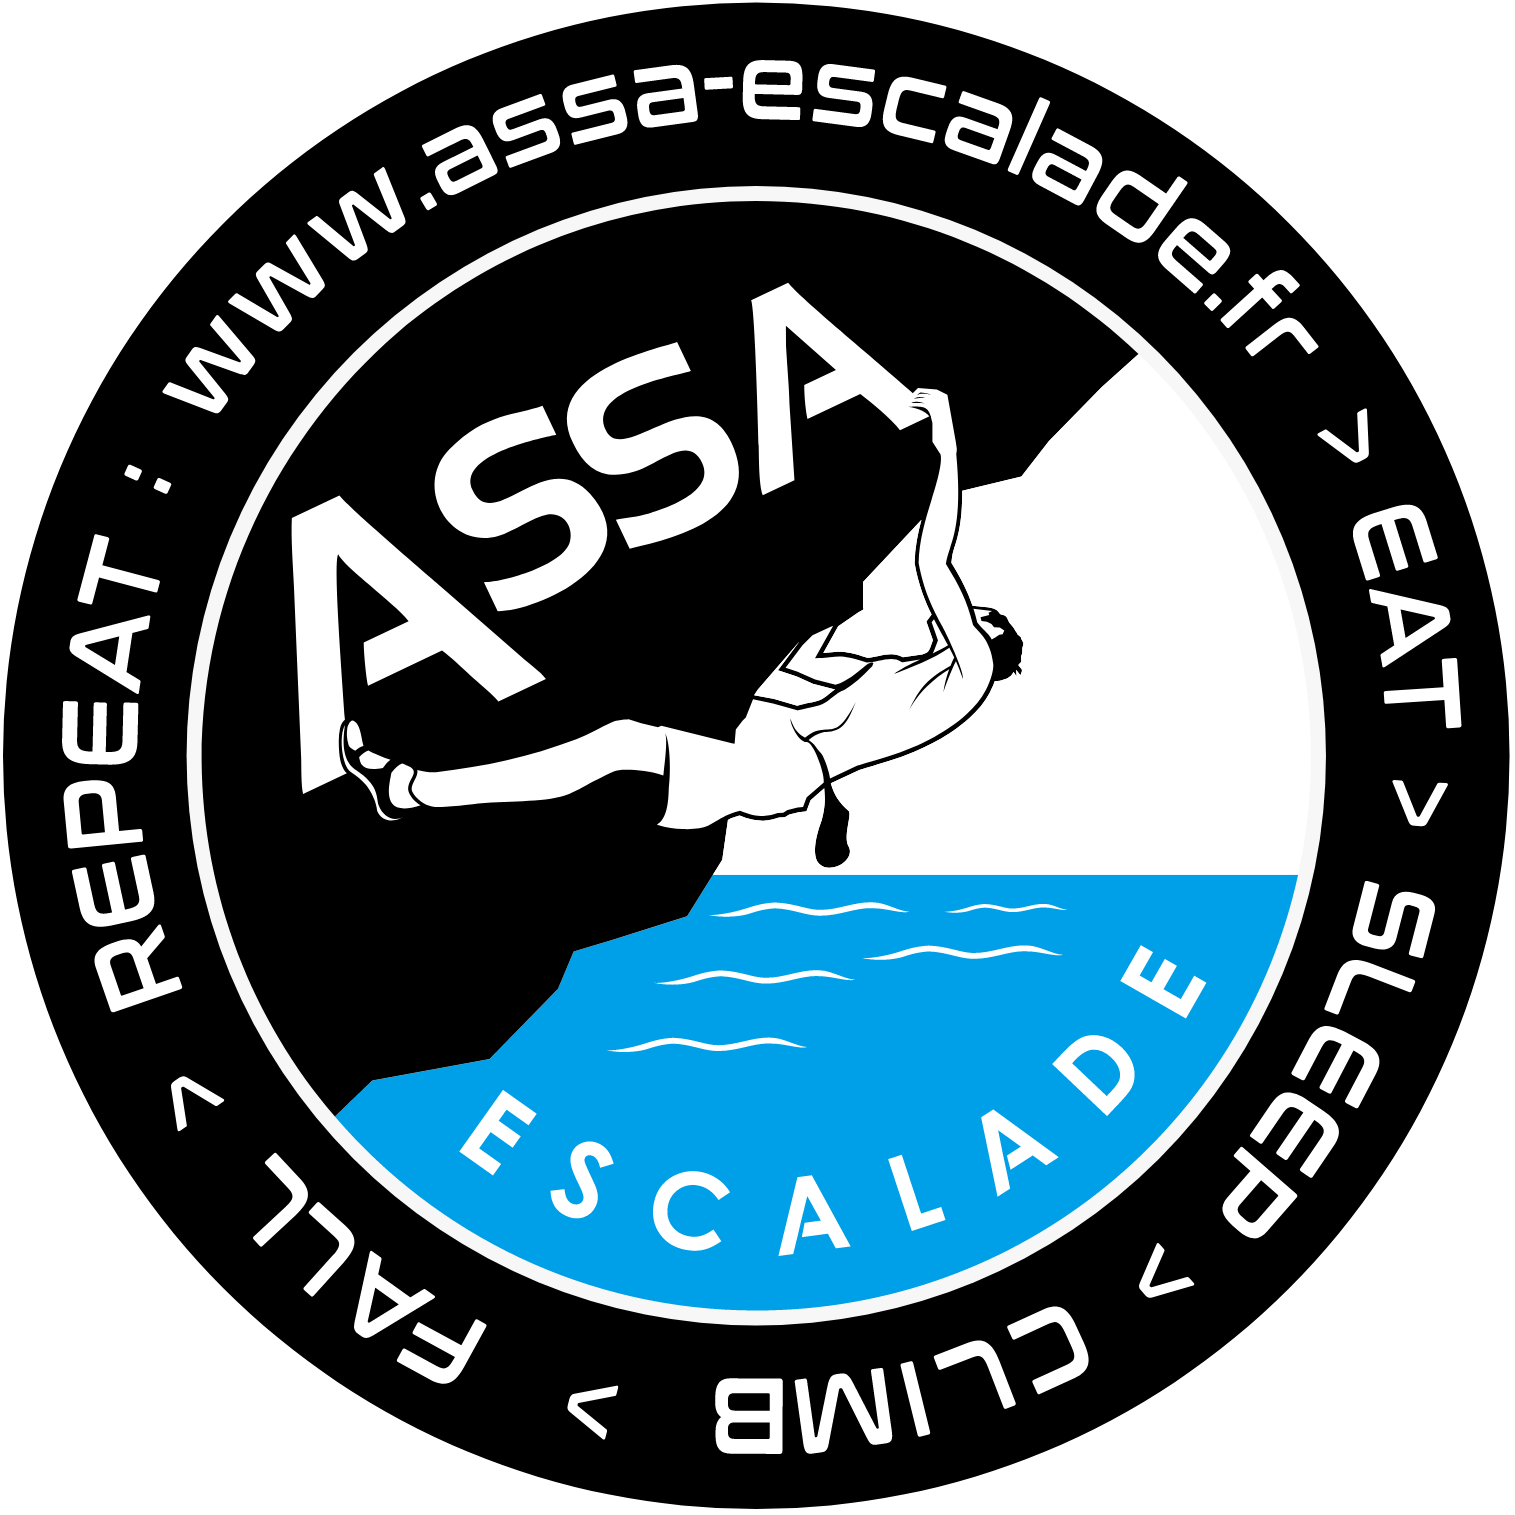 Association ASSA escalade